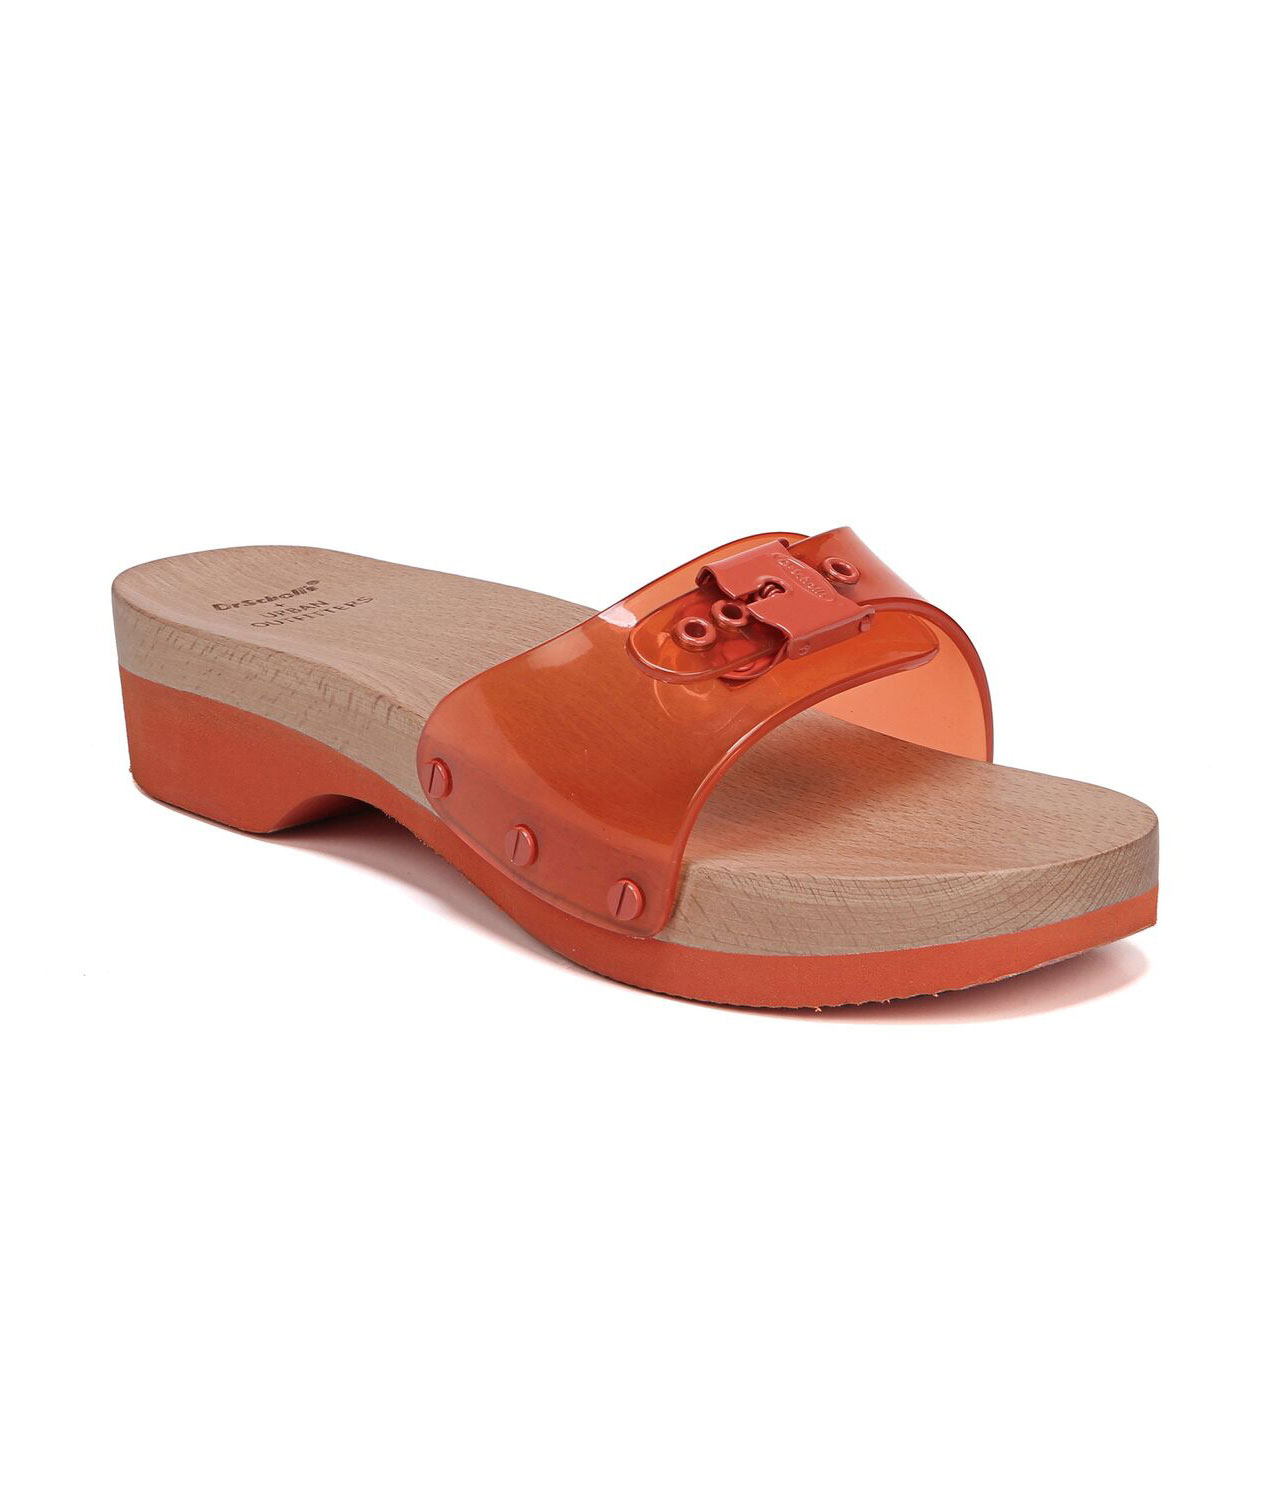 Dr. Scholl's x Urban Outfitters Original Sandal